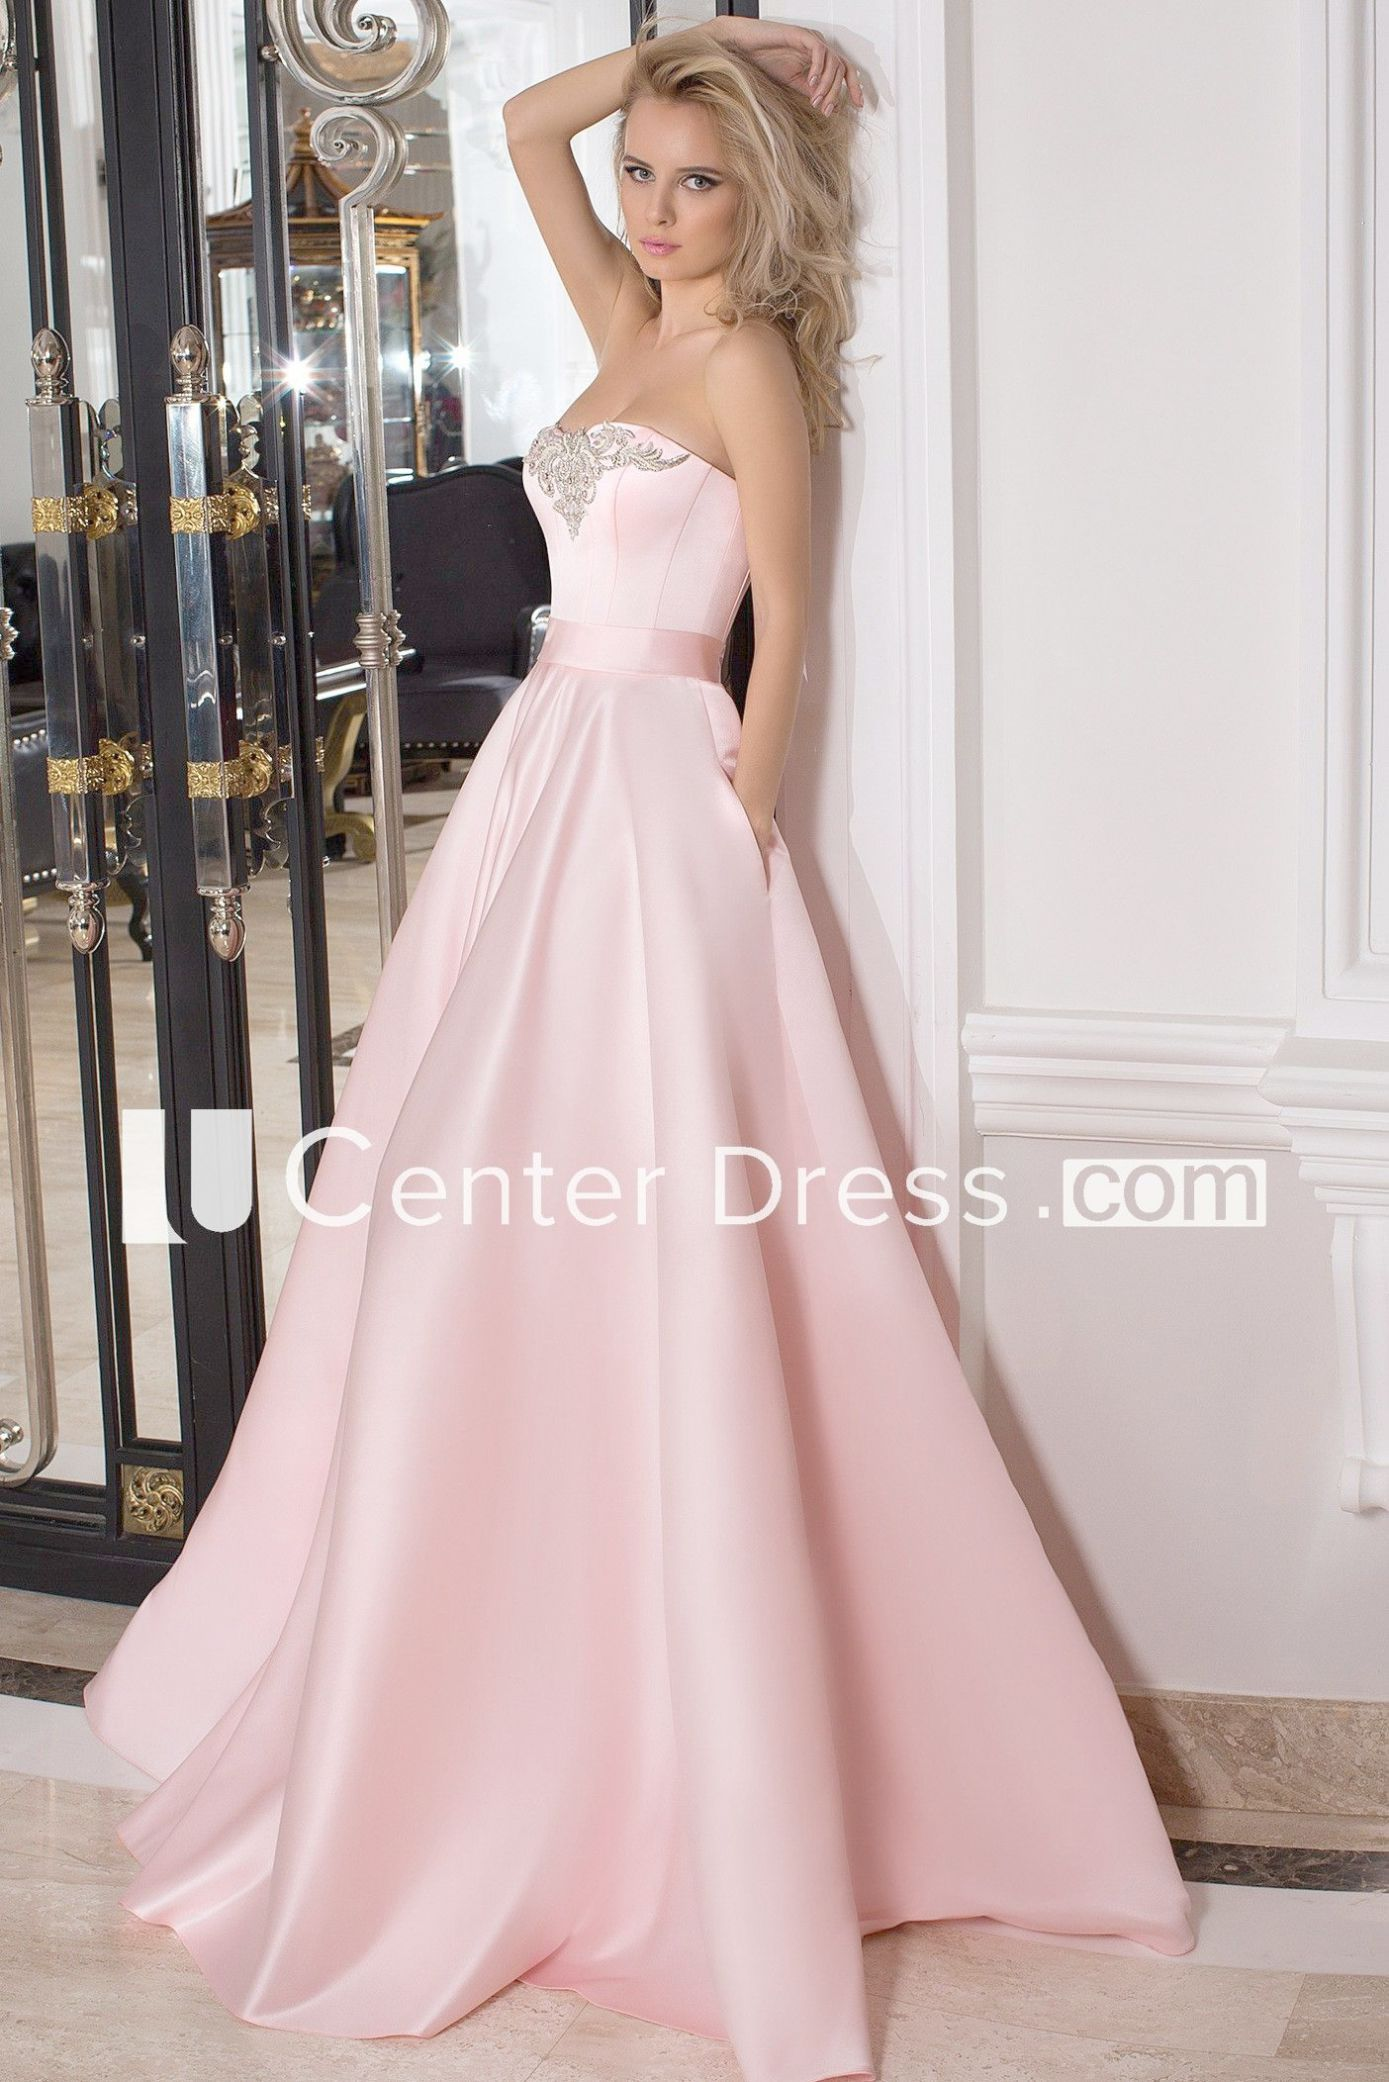 Dress Up Game Fashion Designer New York Beneath Pretty Prom Dresses For Plus Size These Fashion Prom Dresses For Teens Stunning Prom Dresses Prom Girl Dresses